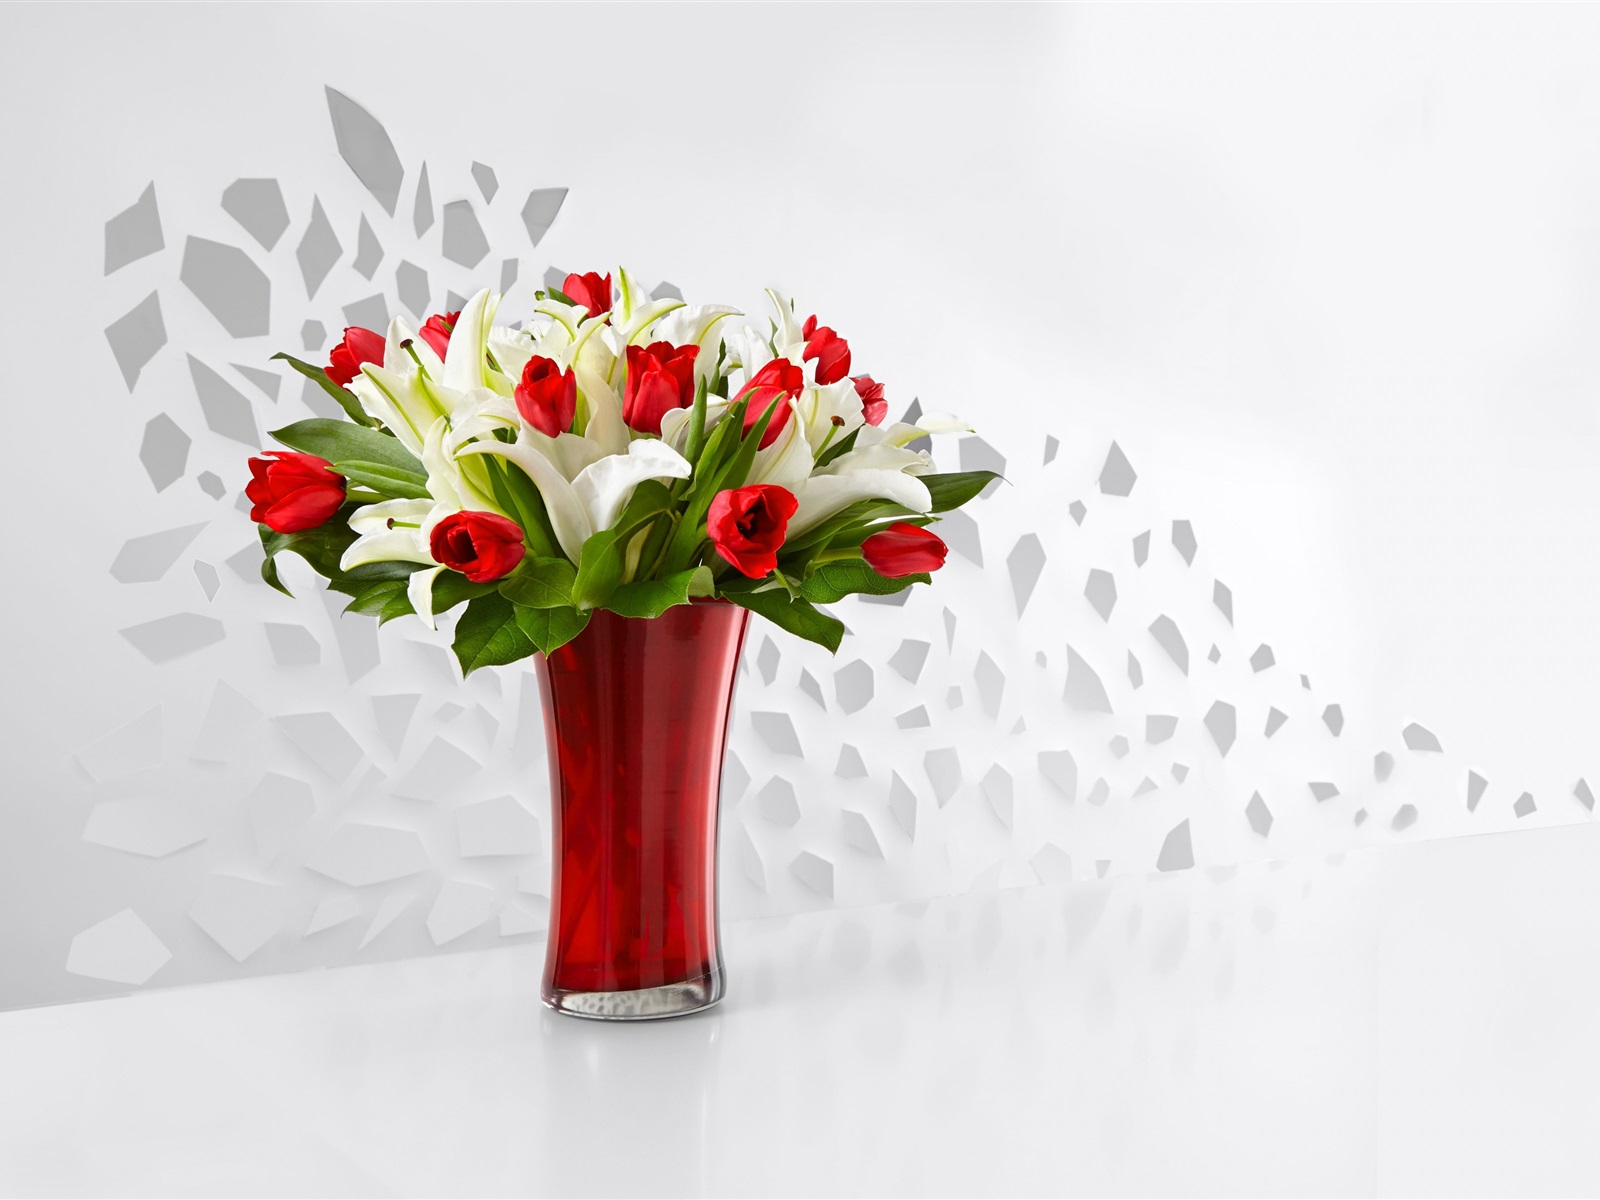 Download Wallpaper 1600x1200 Red Tulips And White Lily